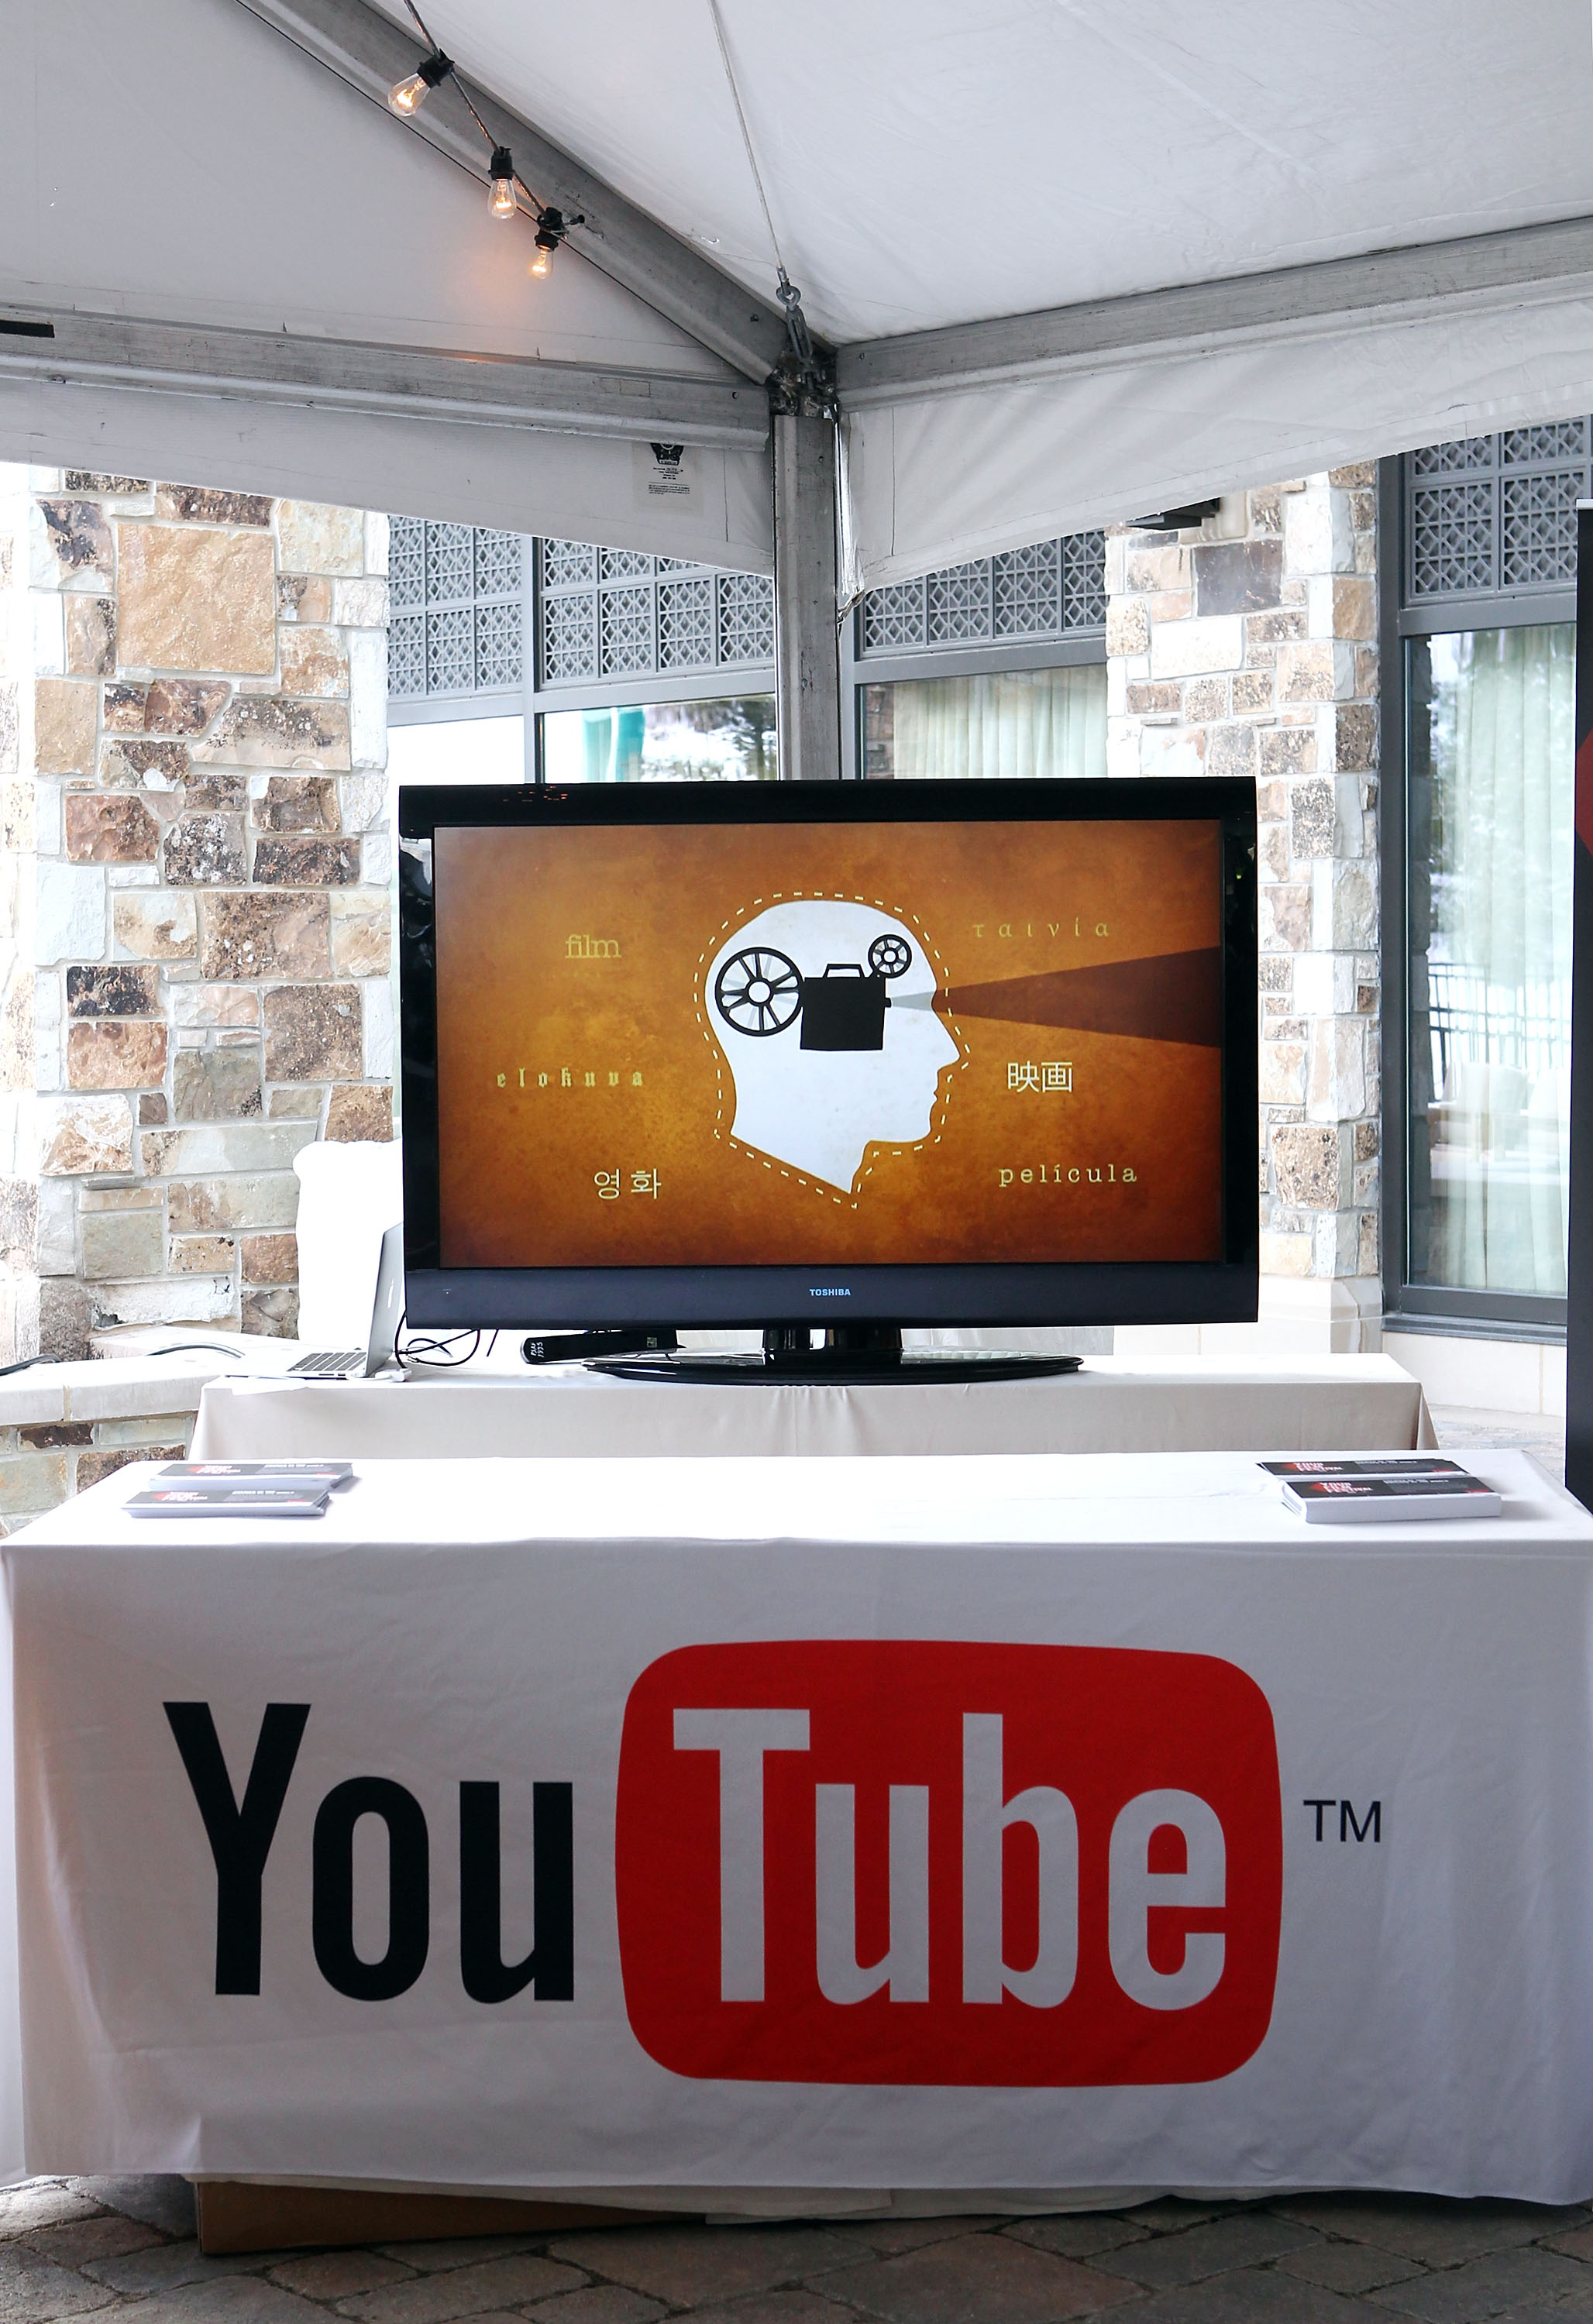 How to Set Up the YouTube App on a Vizio TV | Chron com